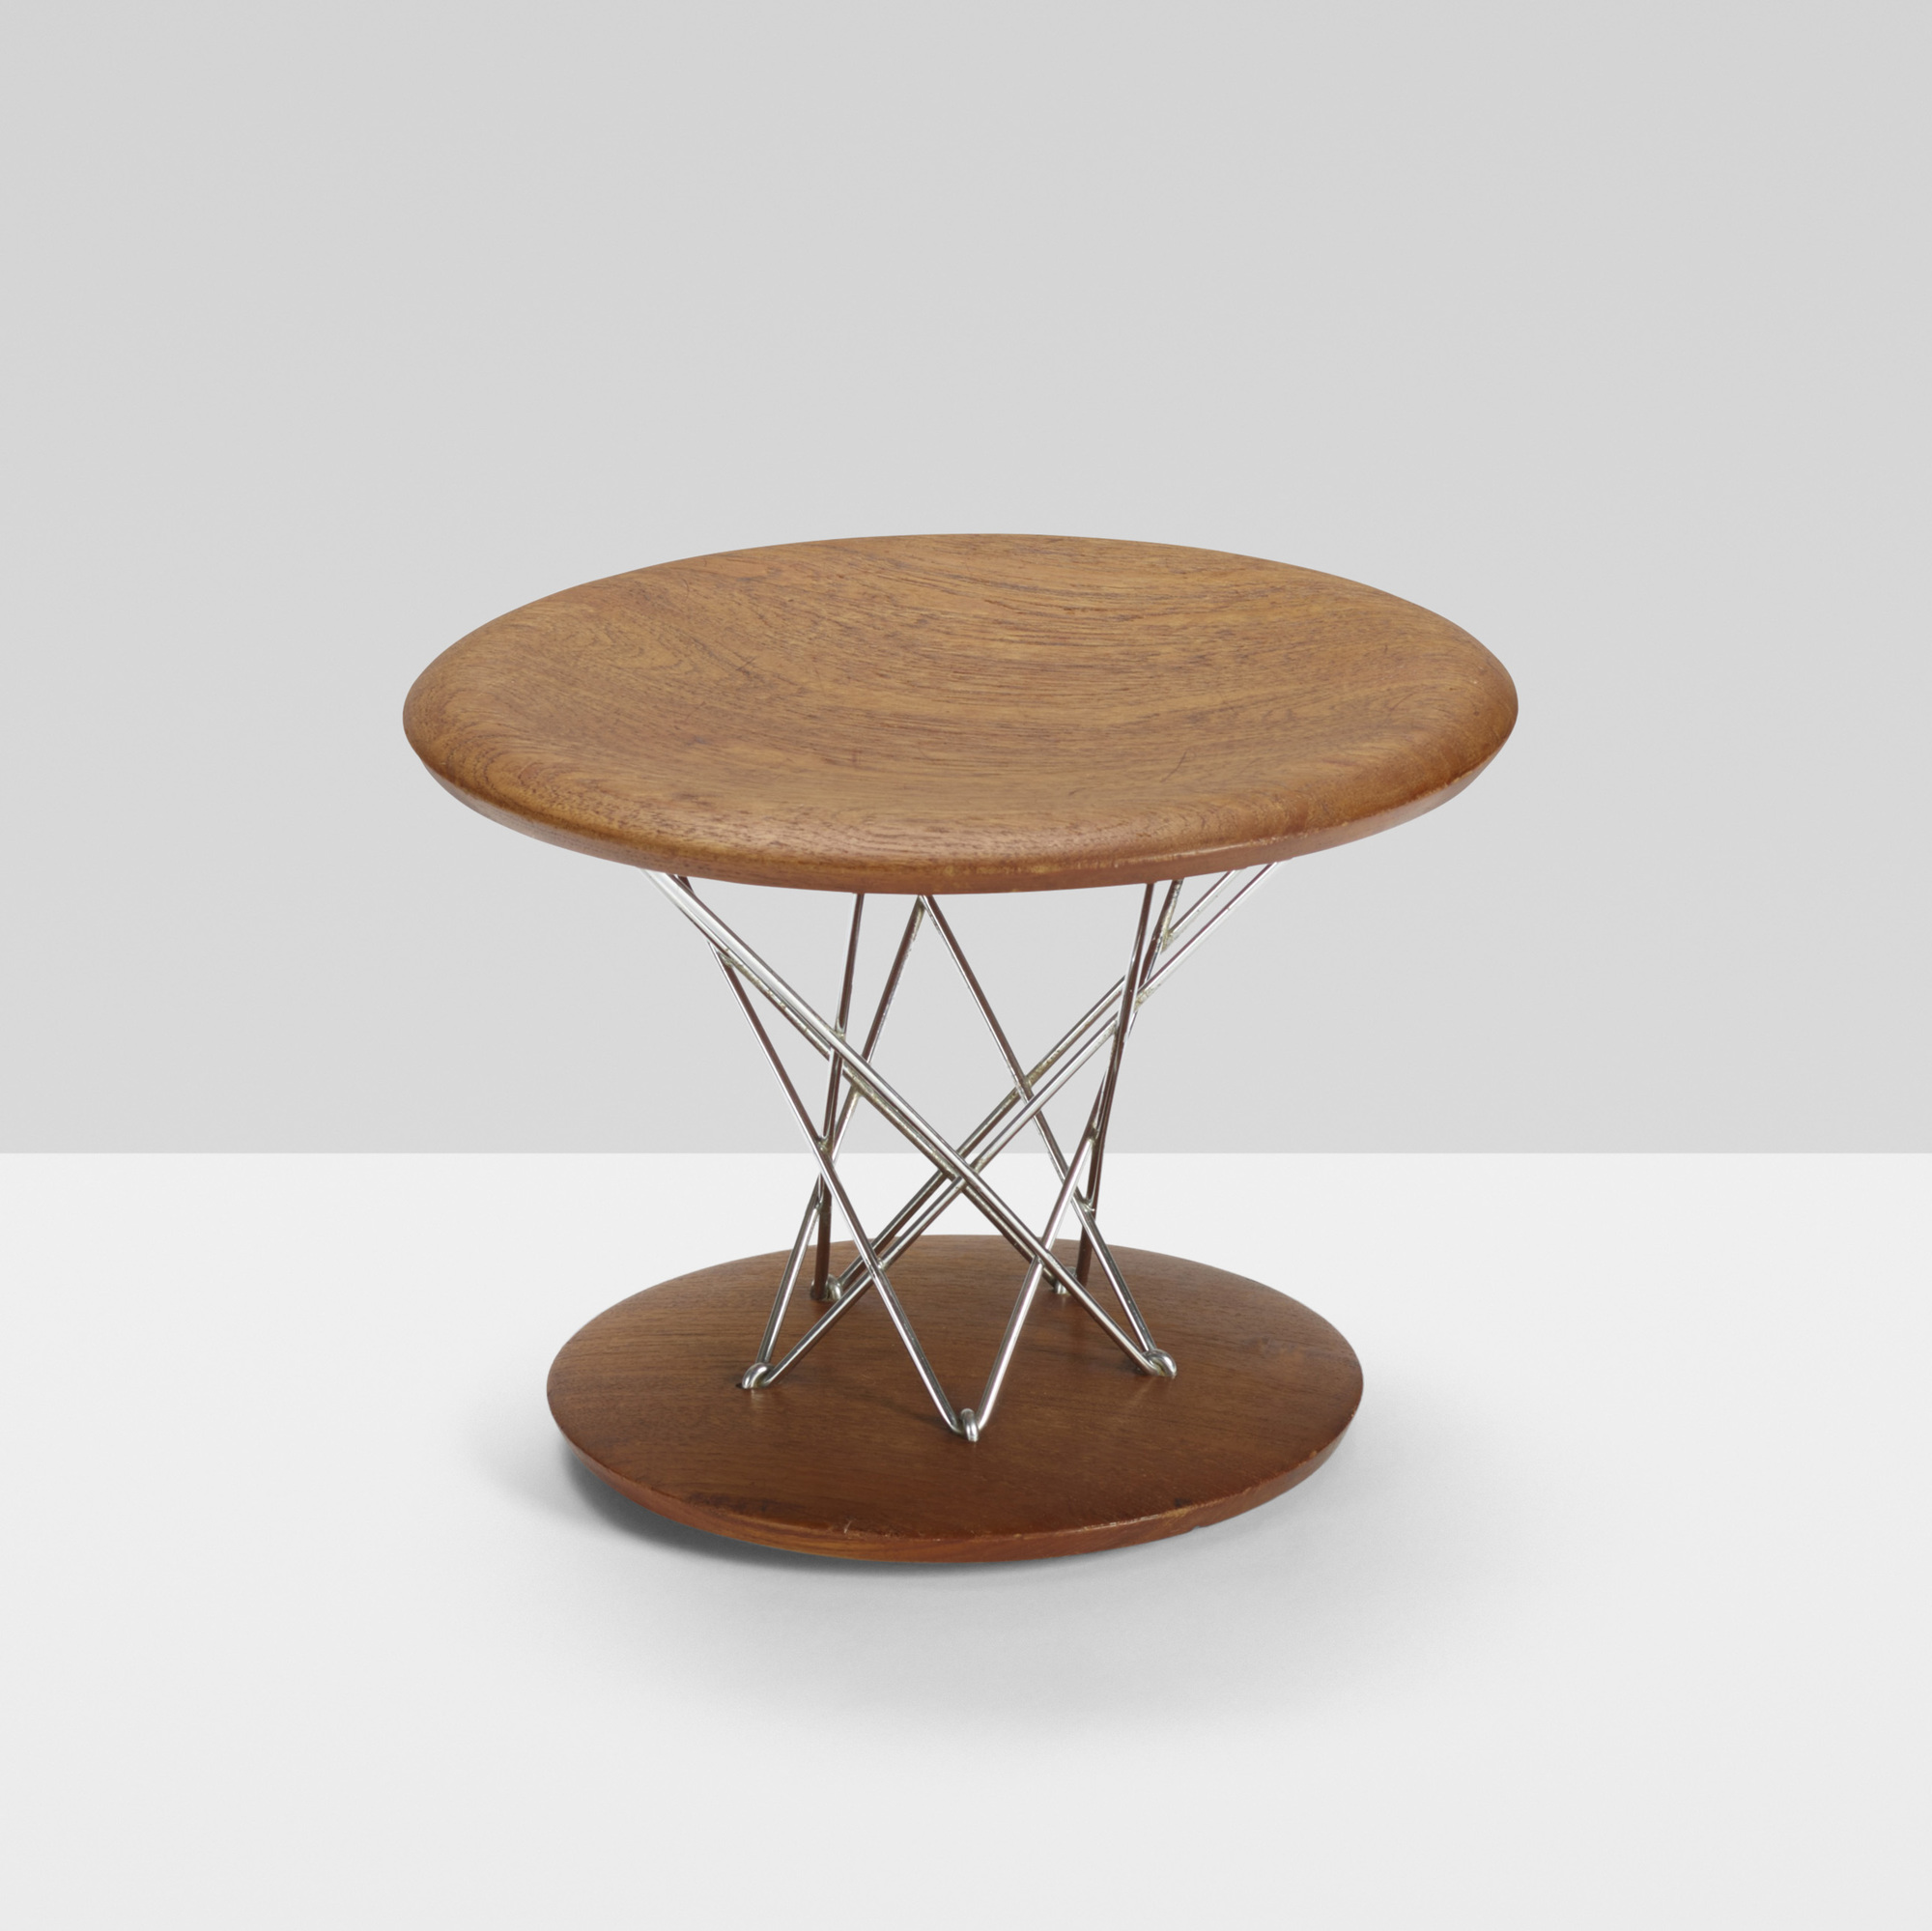 344: Isamu Noguchi / Rocking stool, model 85T (2 of 3)